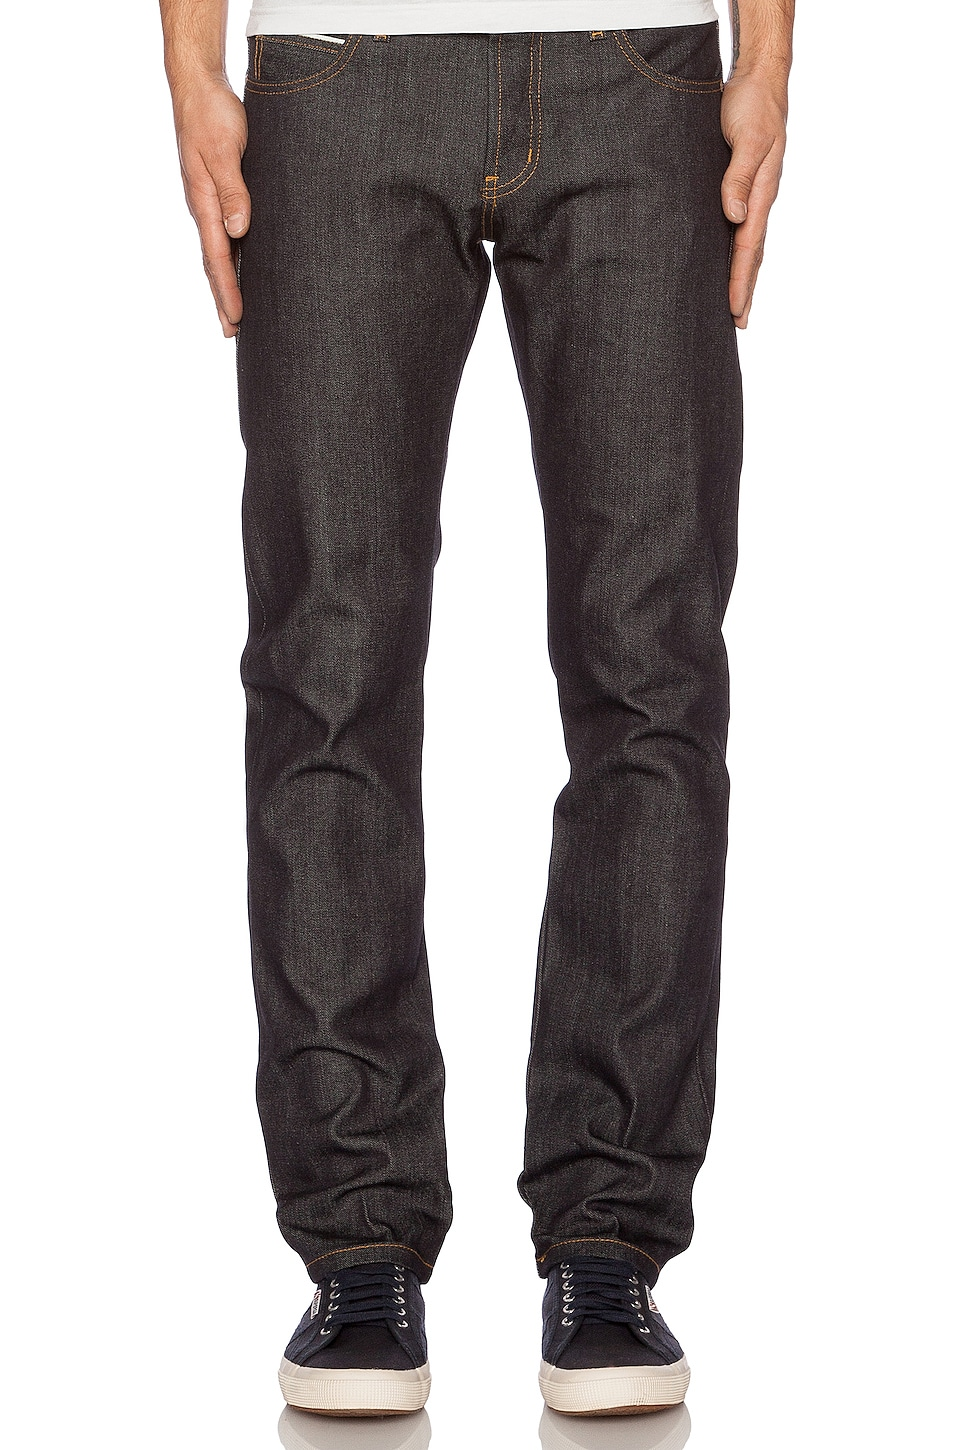 Naked & Famous Denim Super Skinny Guy in Left Hand Twill Selvedge 13.75 oz in Indigo